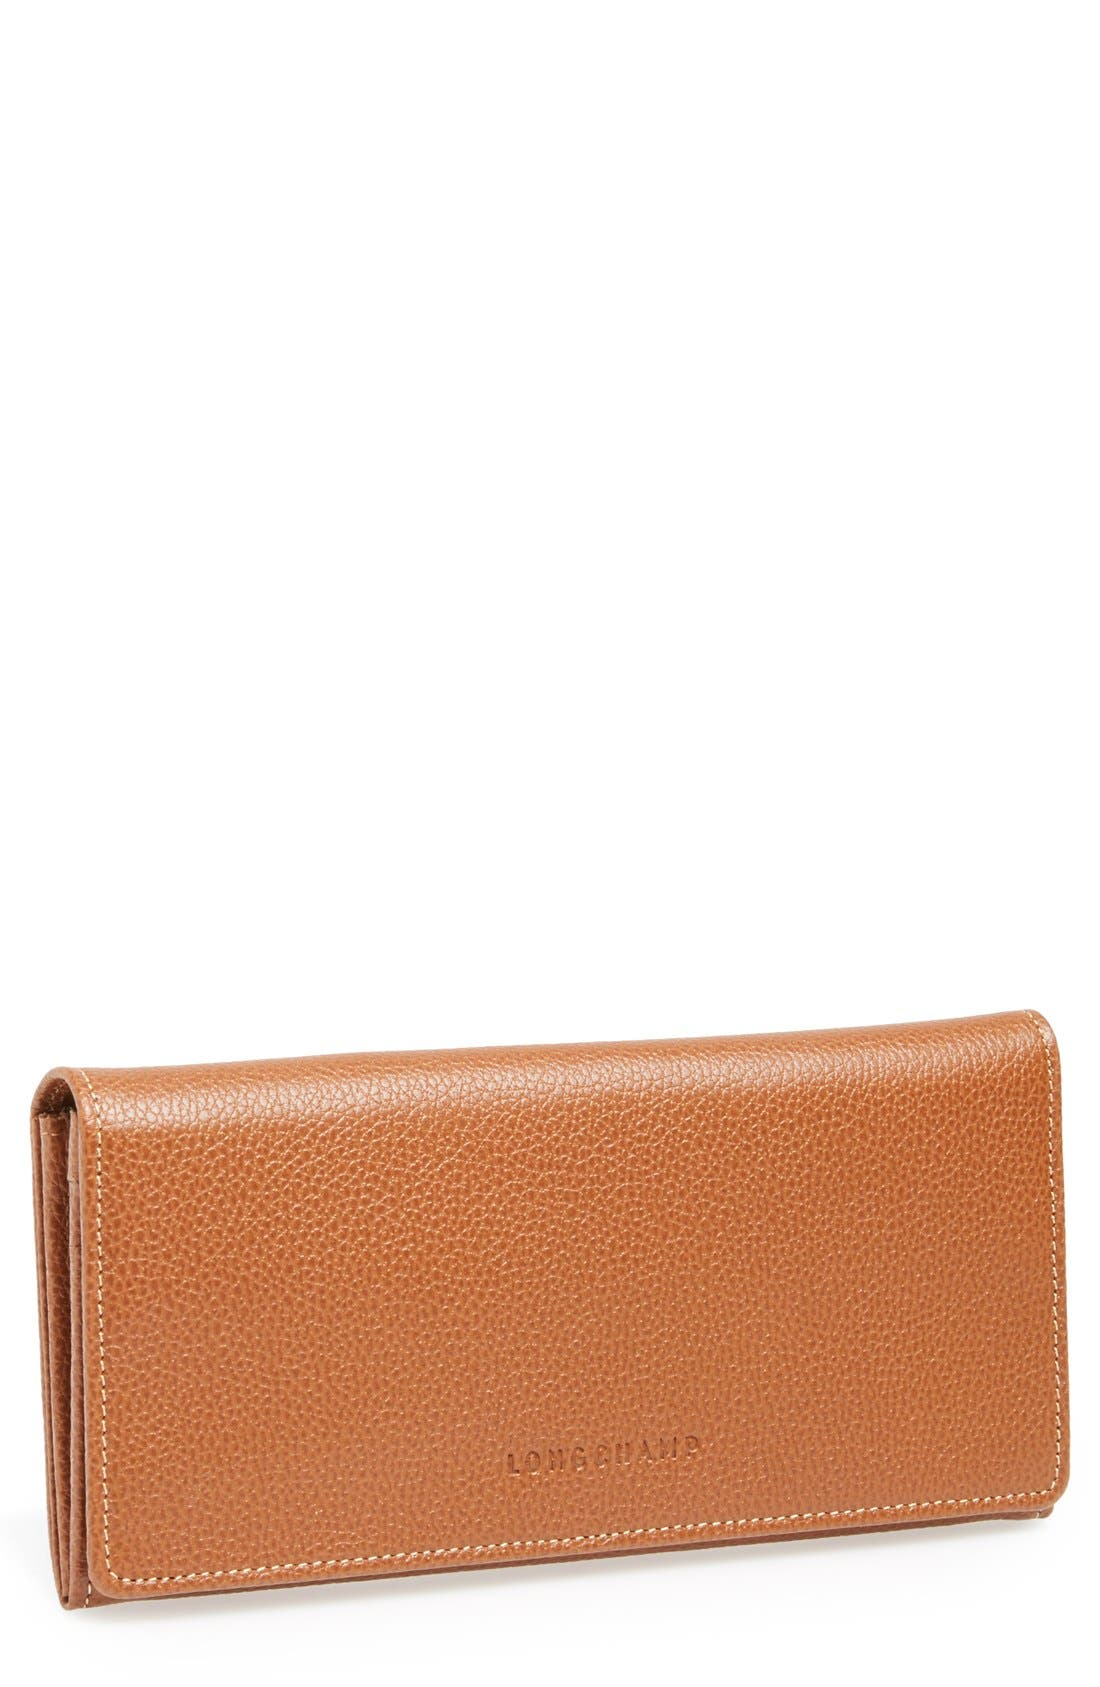 Longchamp 'Veau' Continental Wallet